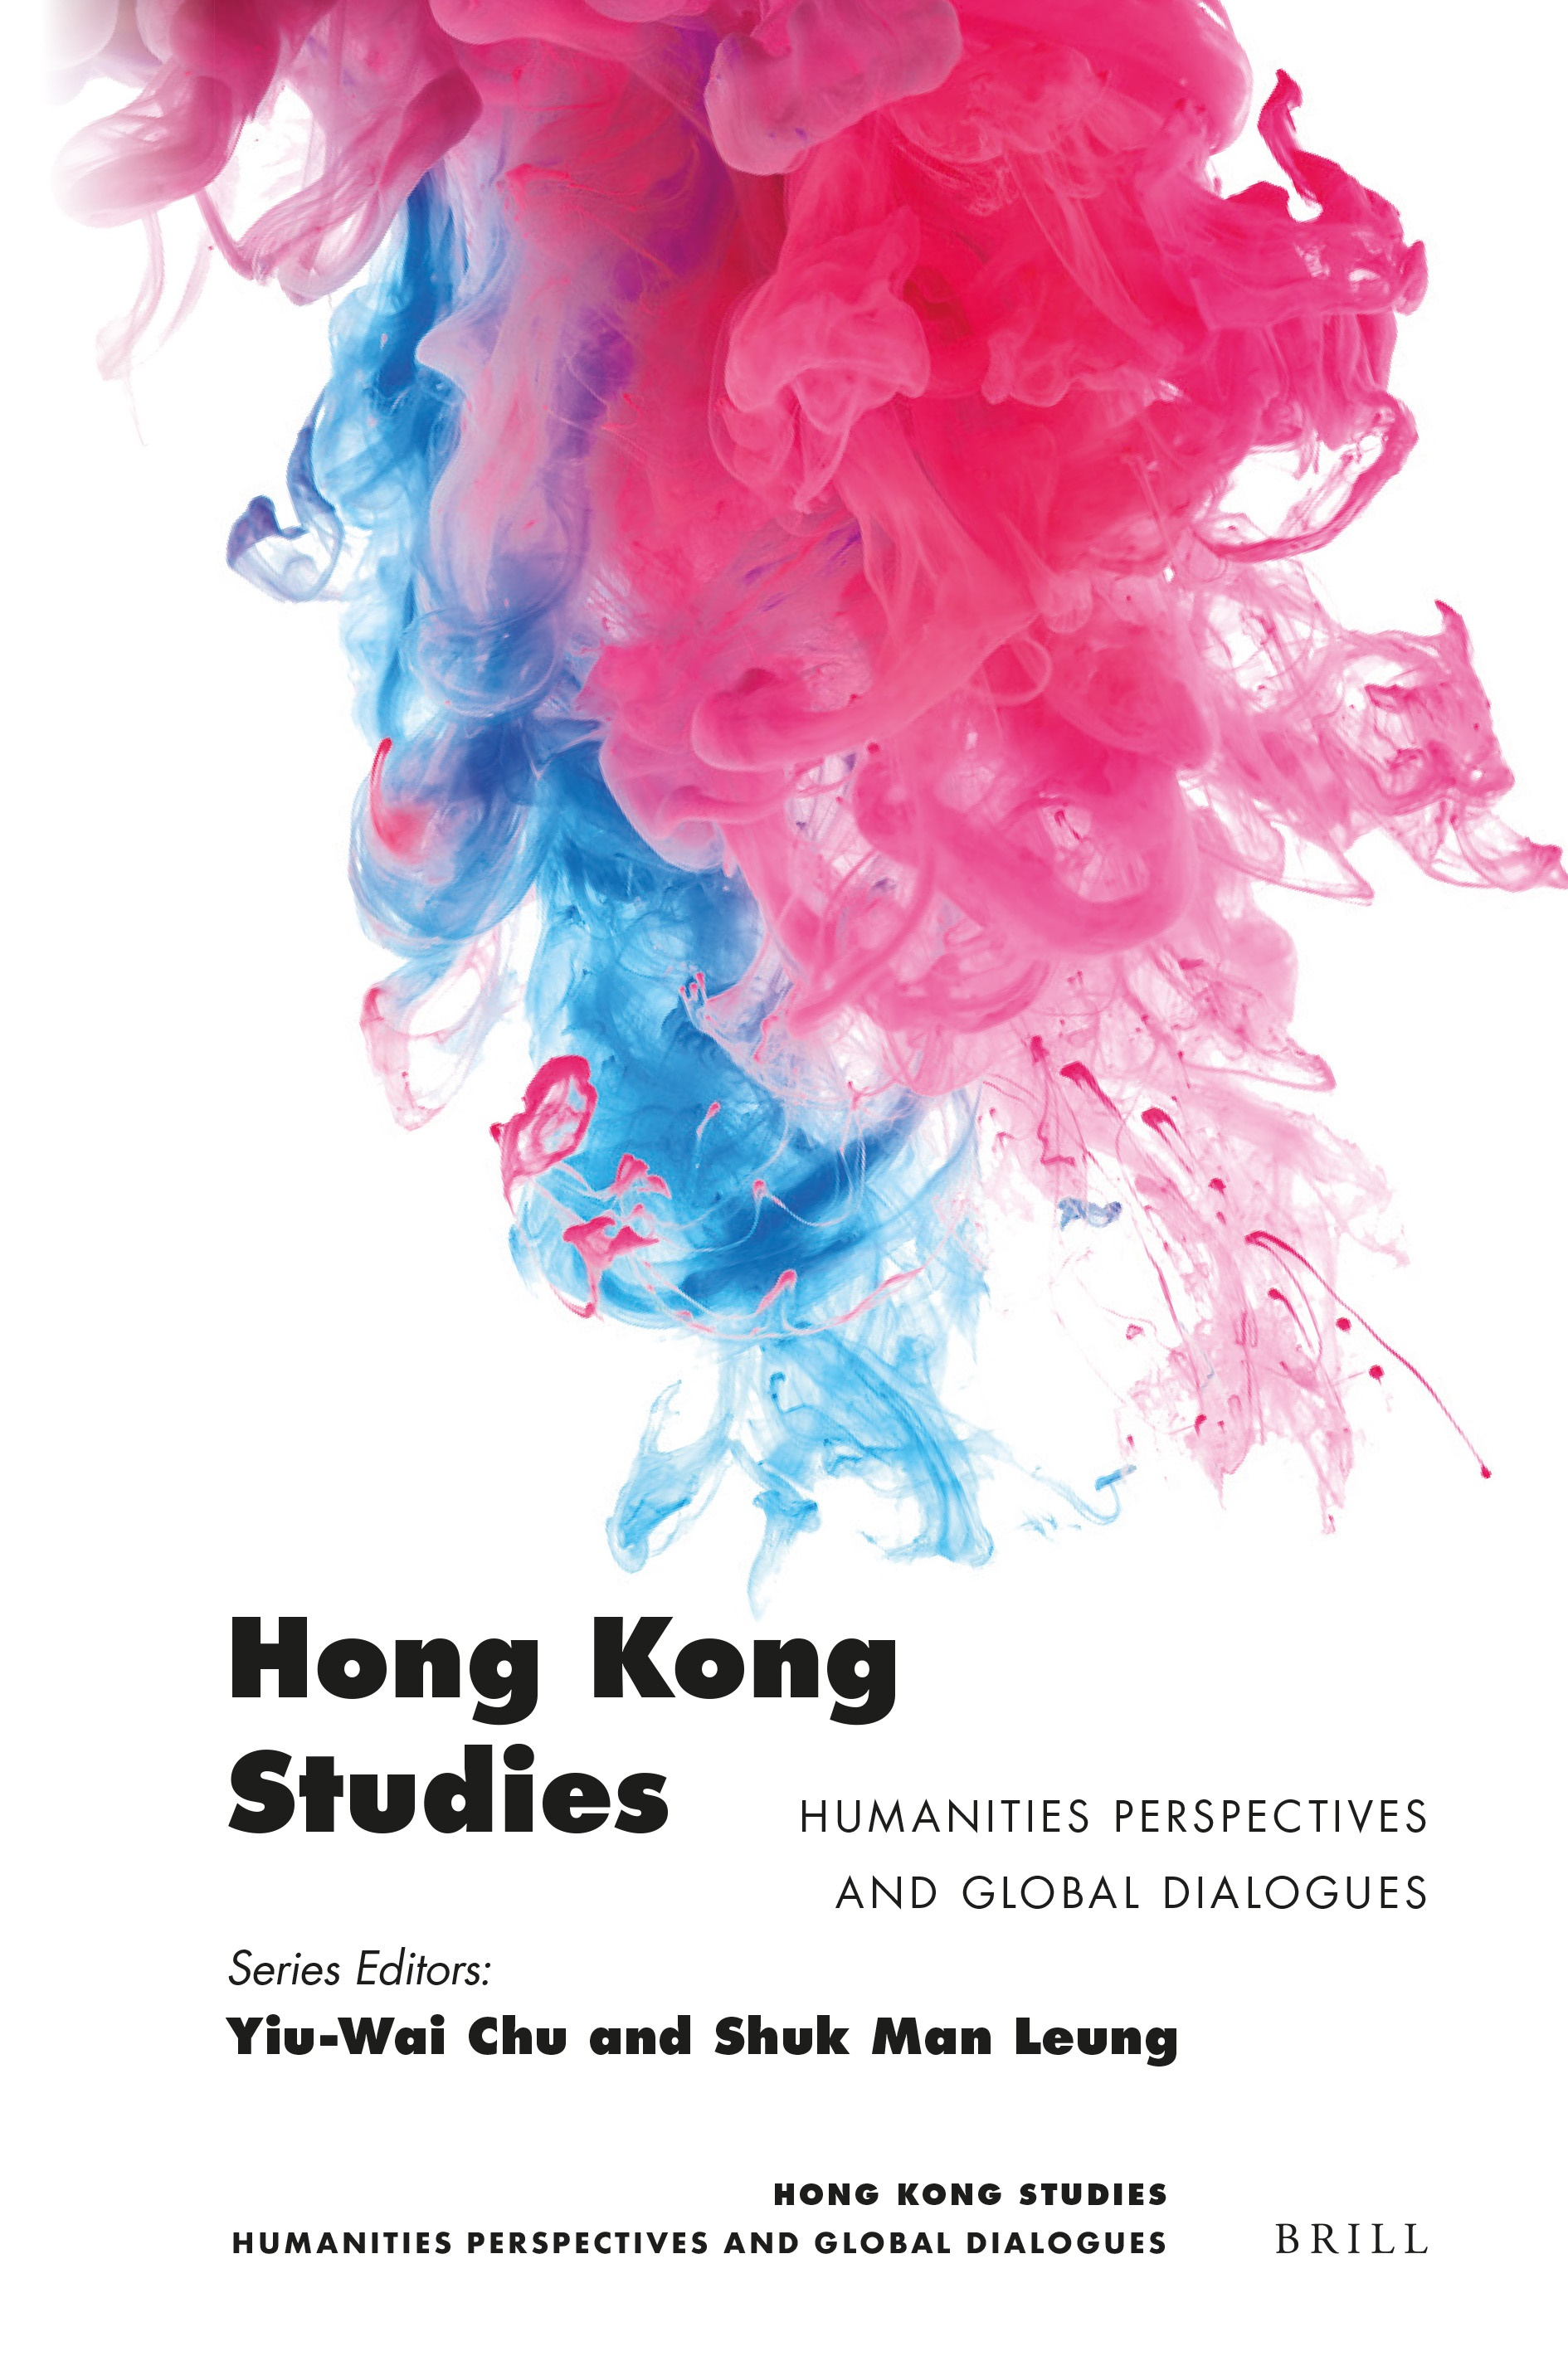 HK-Studies-Humanities-Perspectives-and-Global-Dialogues